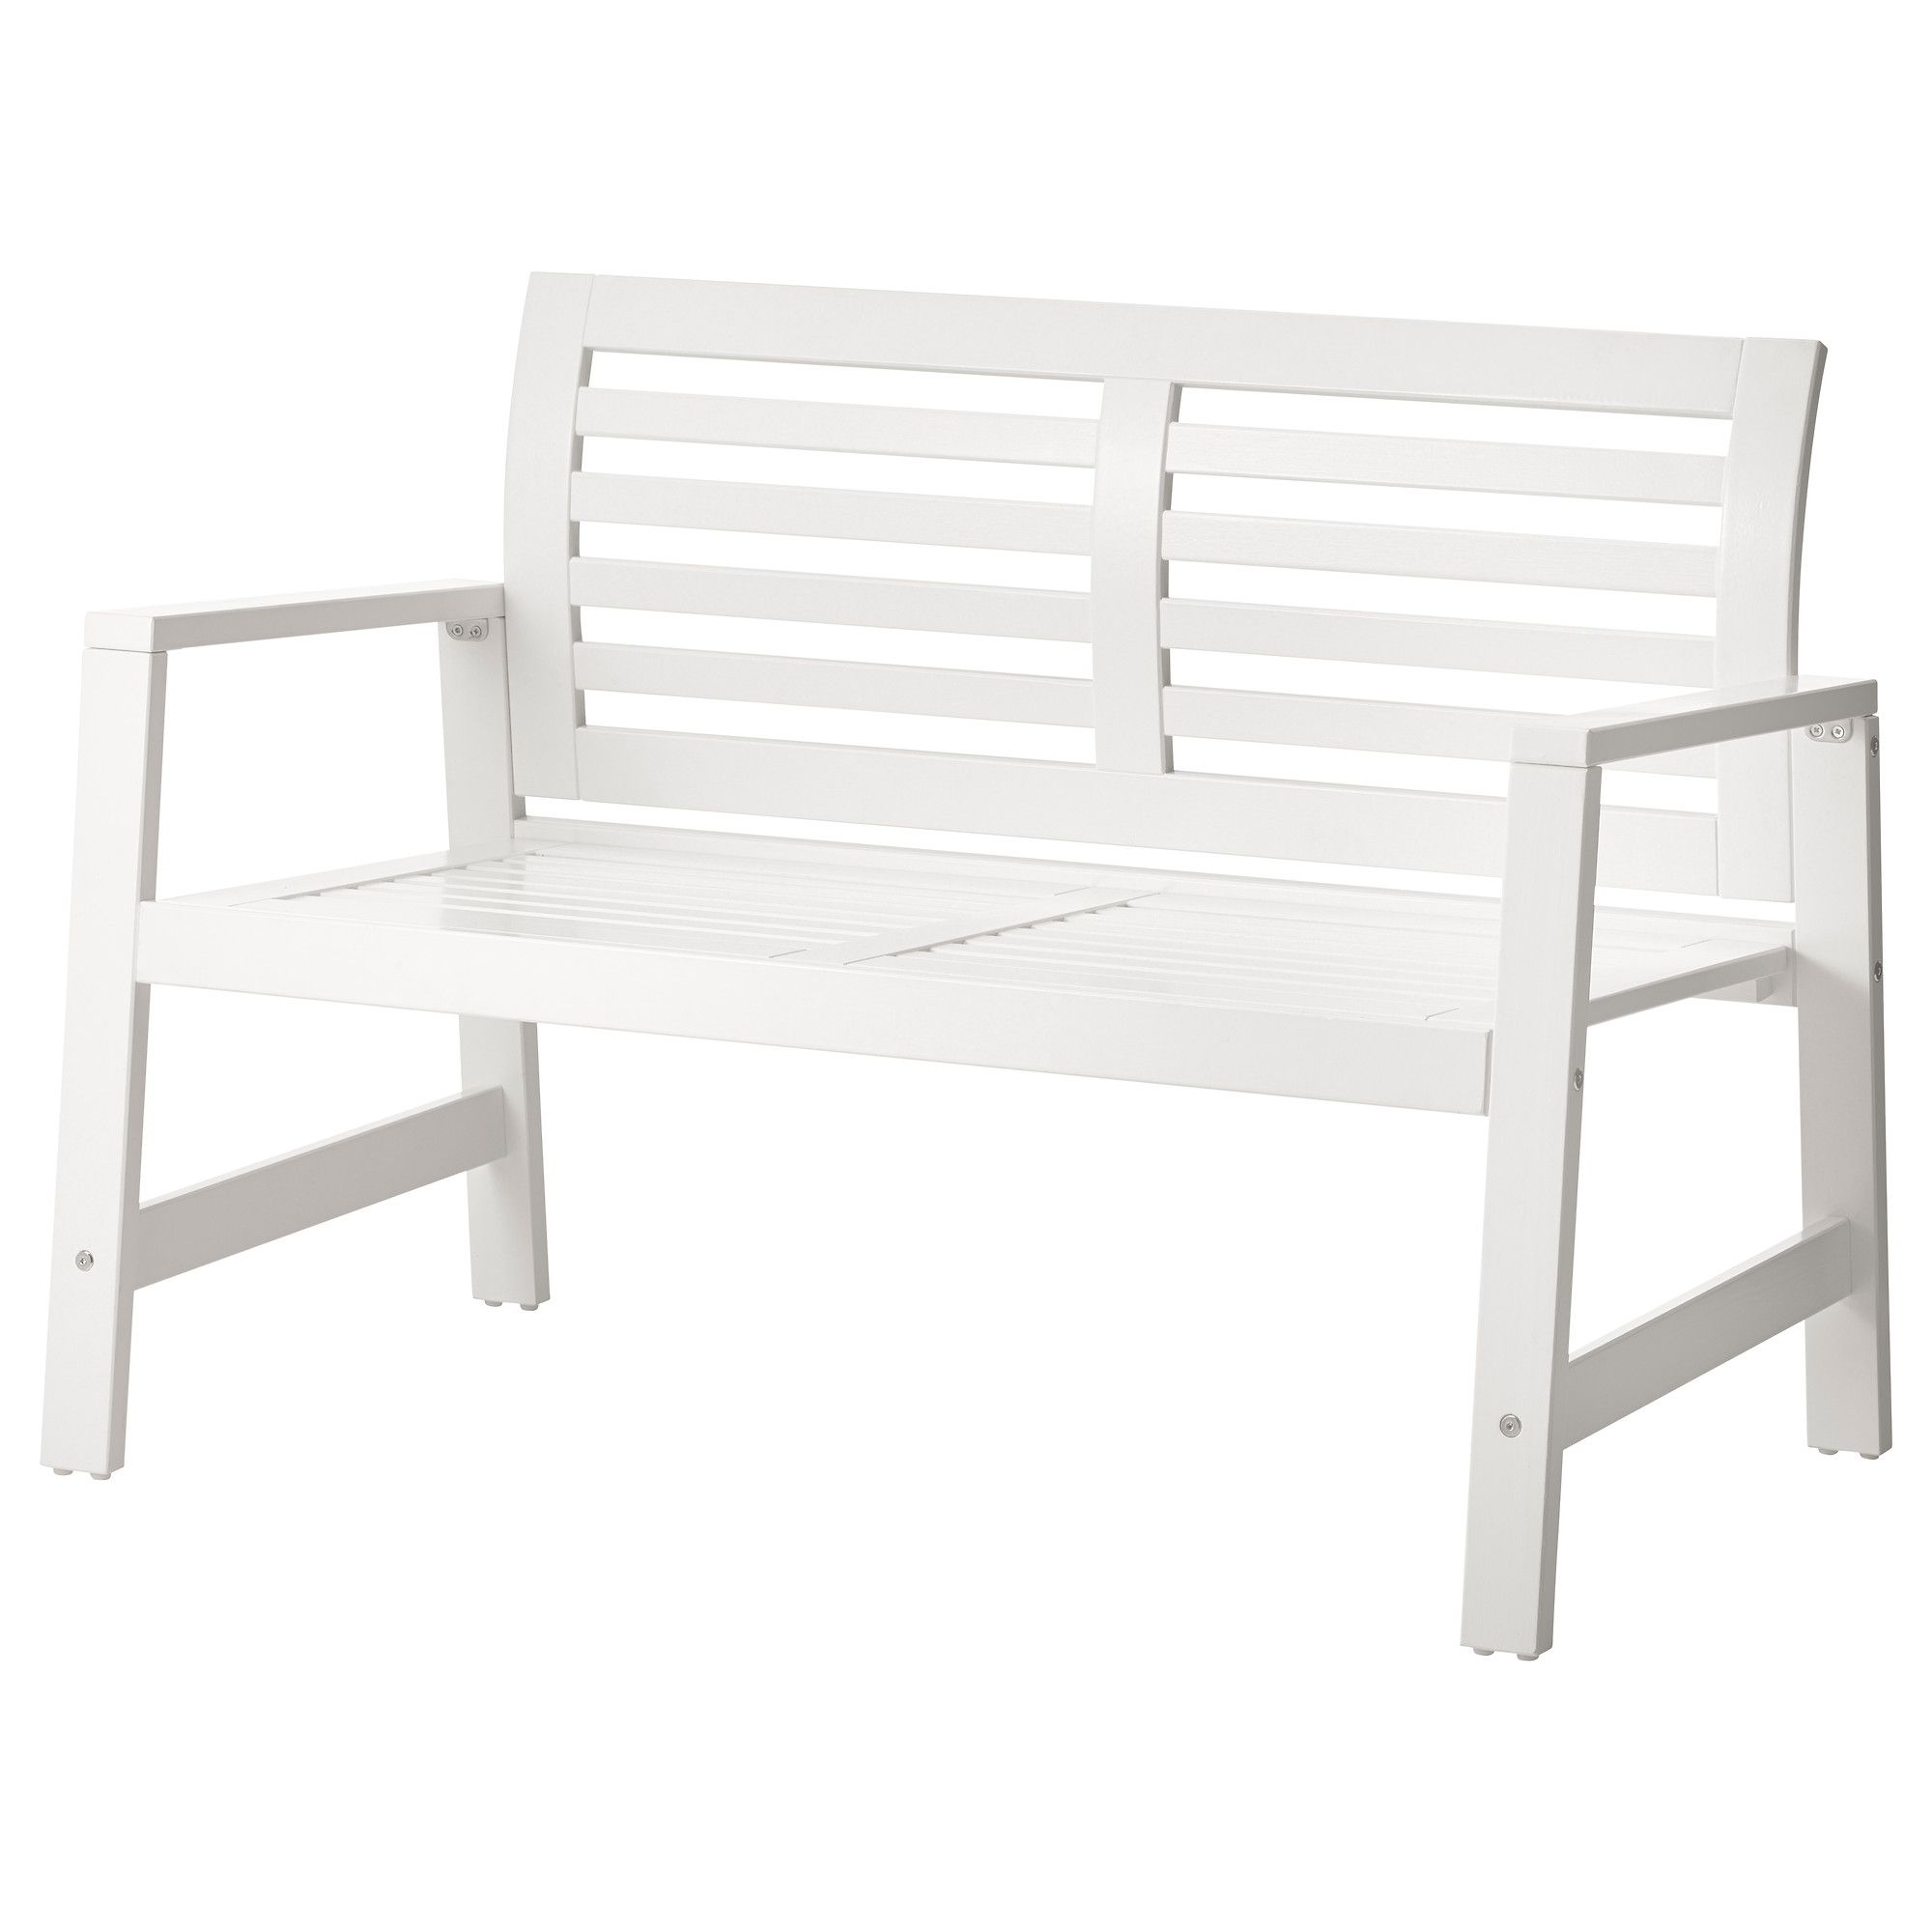 Wooden Bench Ikea Part - 15: ÄPPLARÖ Bench - White - IKEA. For The Deck.